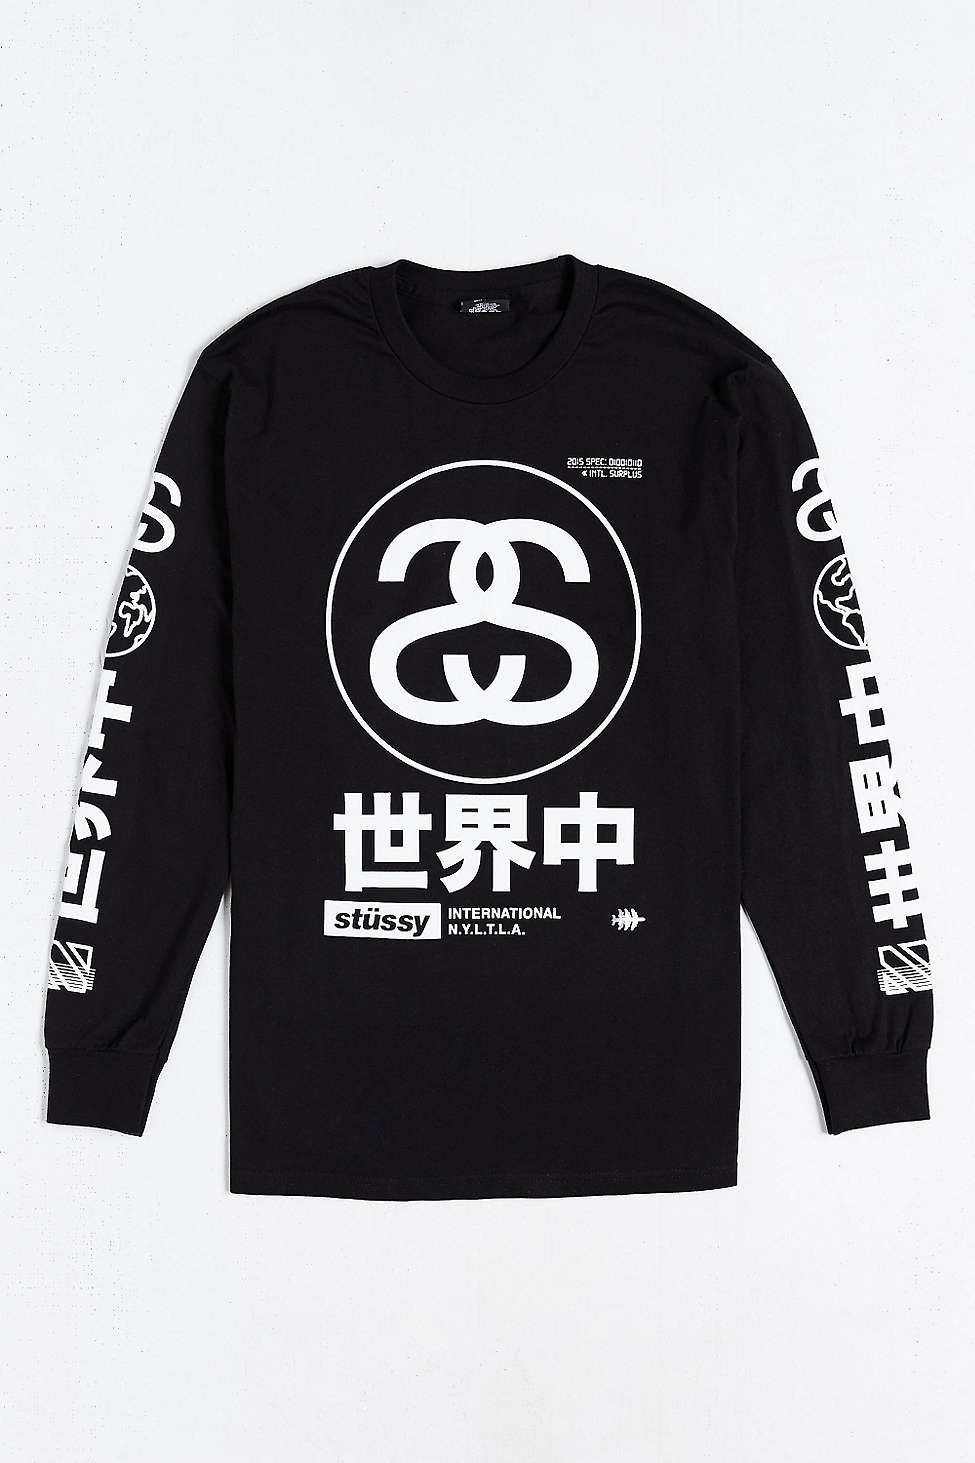 4b9ac07d8 Stussy Japan International Long-Sleeve Tee the aesthetics are so strong  with this one